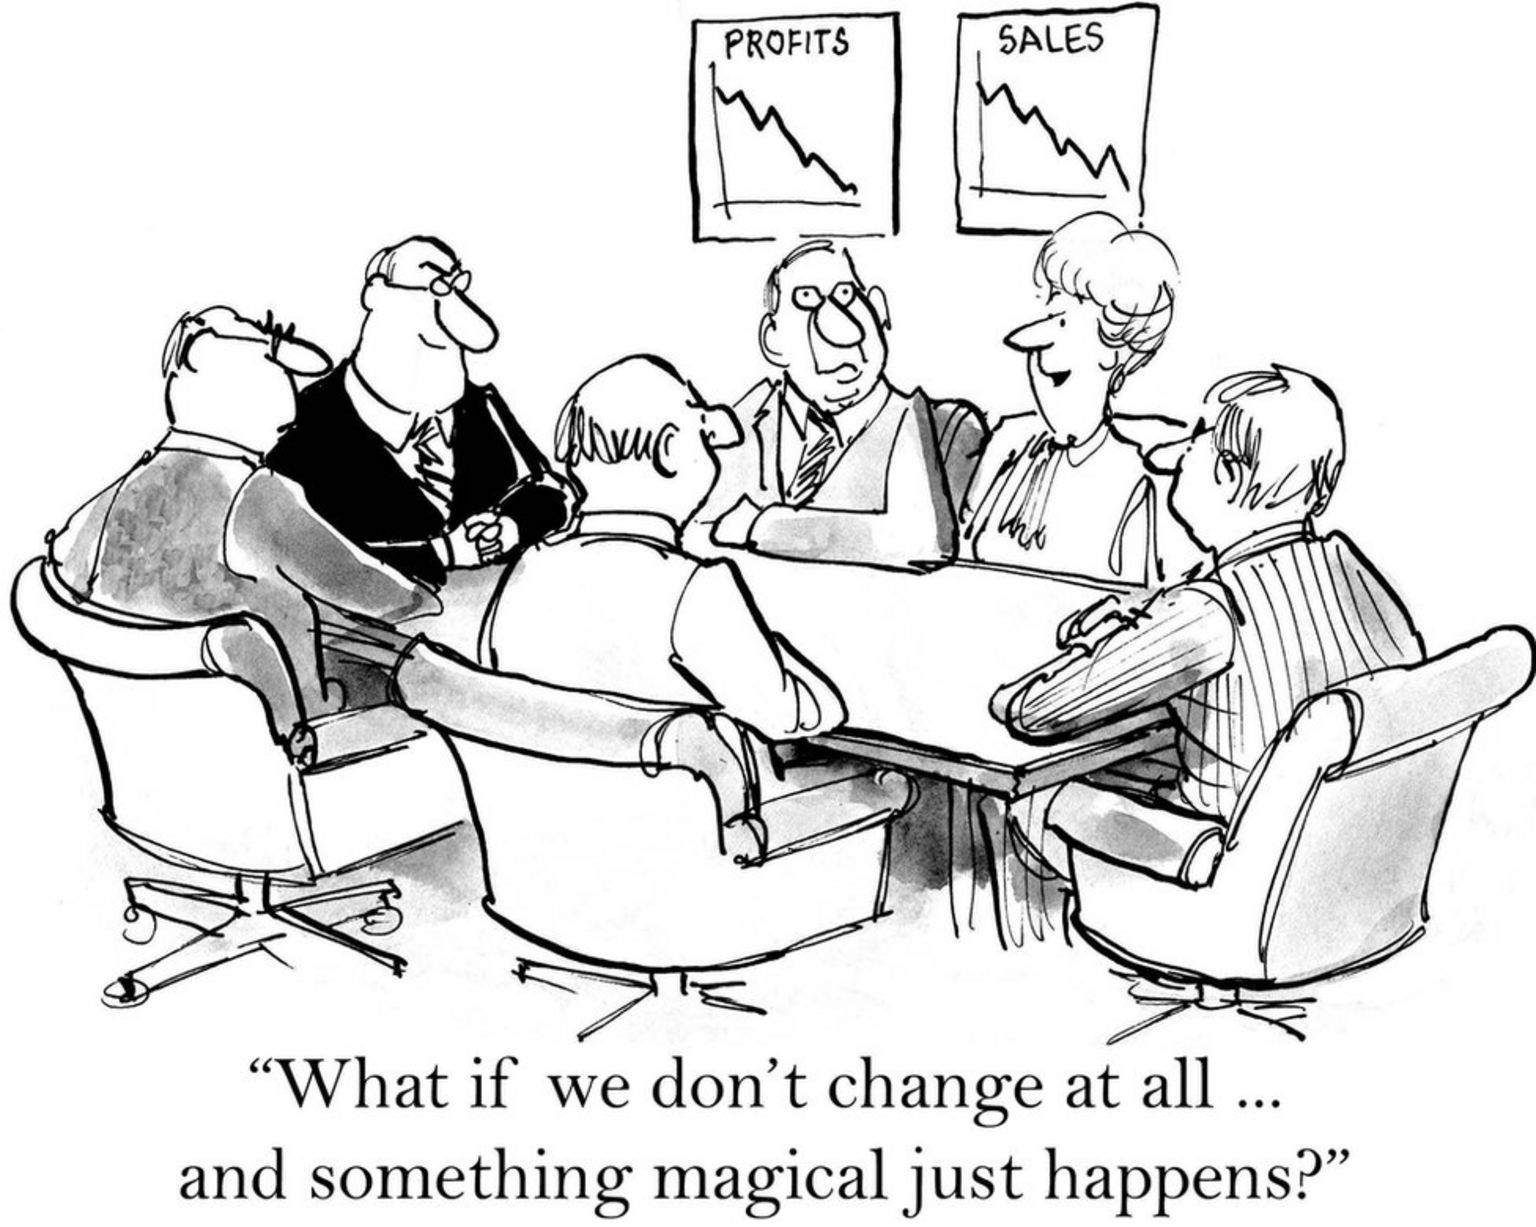 """What if we don't change at all..and something magical just happens?"" Cartoon"